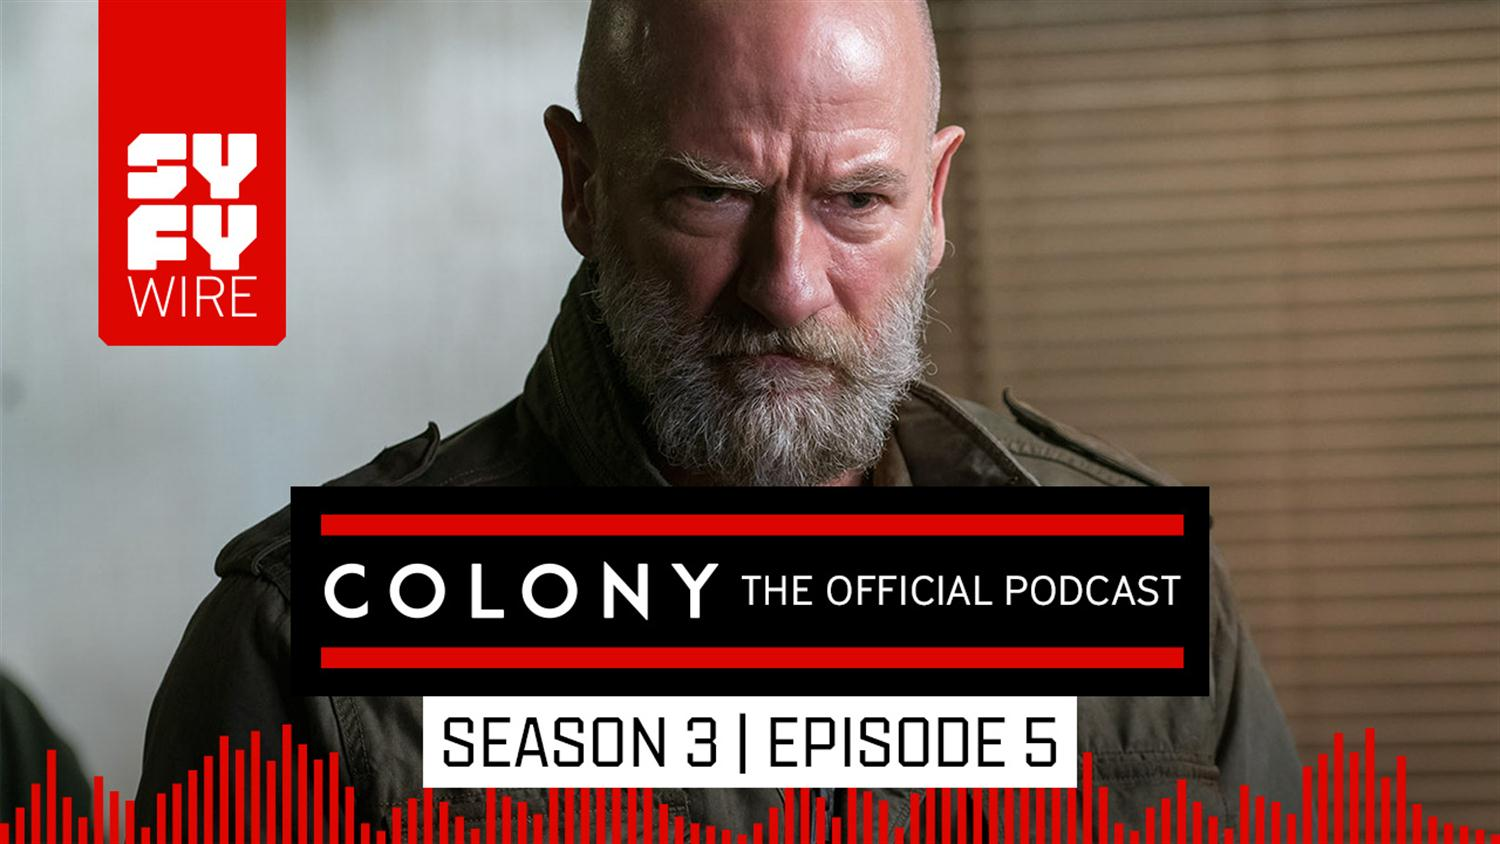 Colony The Official Podcast: Season 3, Episode 5